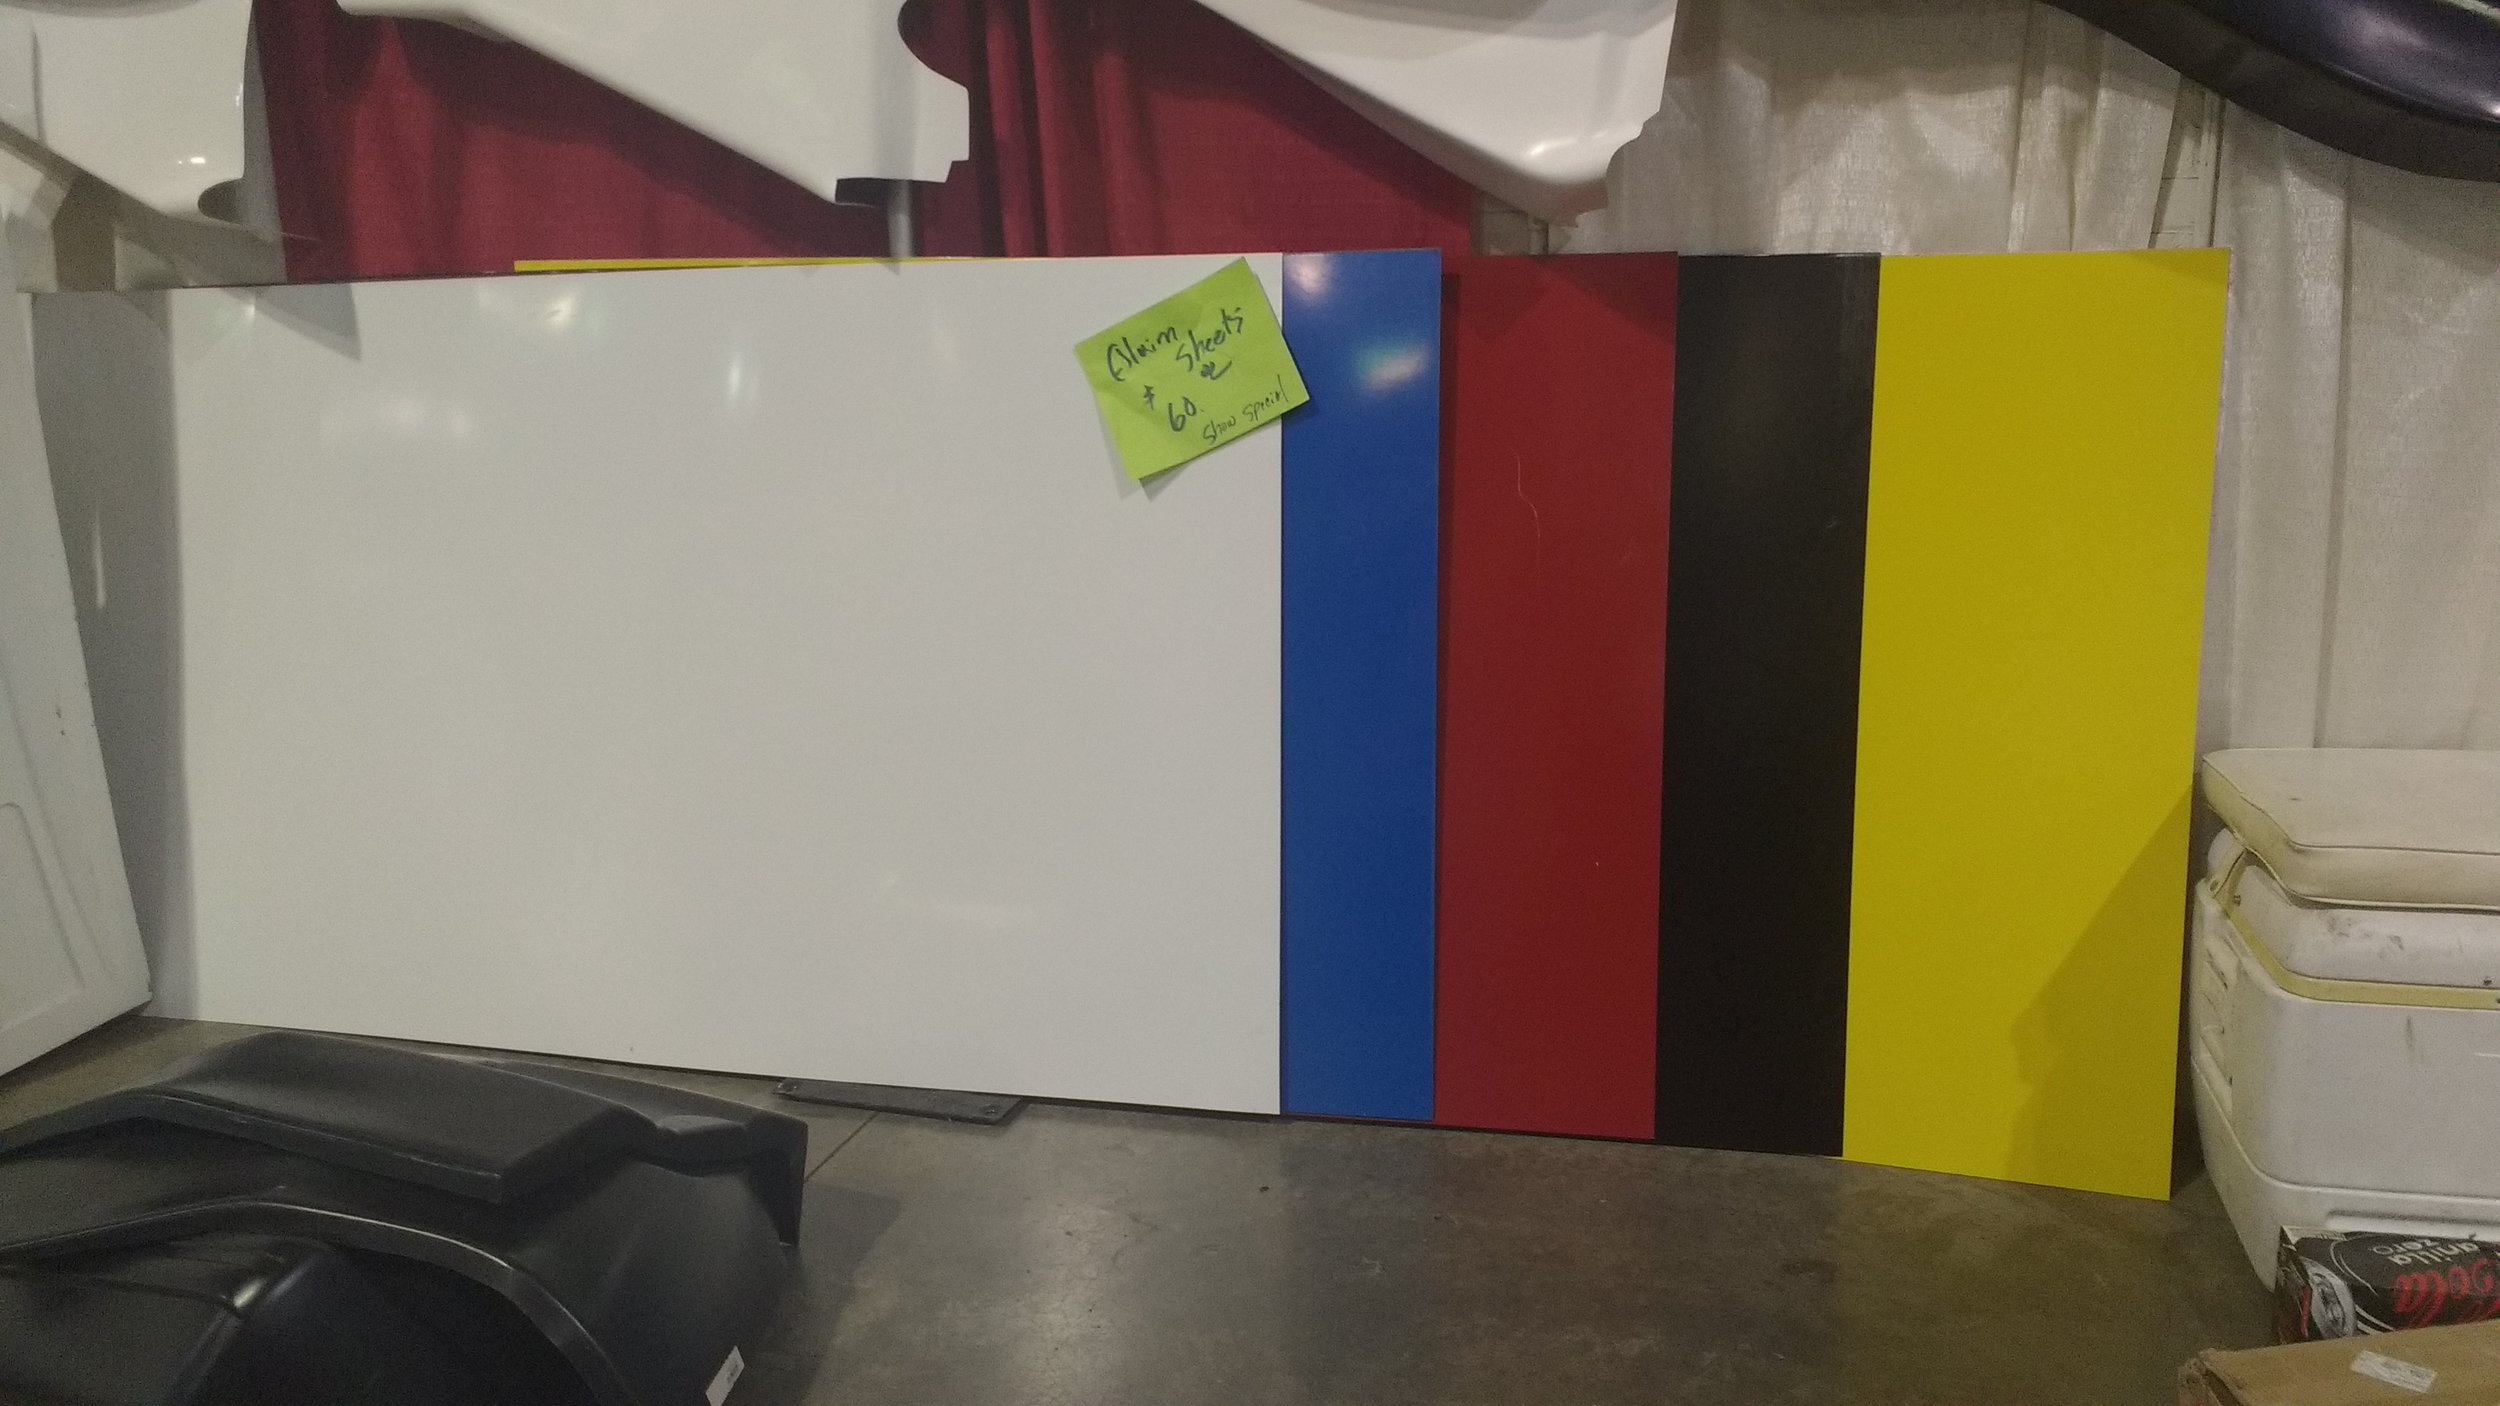 Now in stock 4x8 Aluminium sheets. You can come by the shop and buy our extra sheets if you want to build your own body. Give us a call ahead of time to make sure what you need is in stock!  Price per sheet - $60